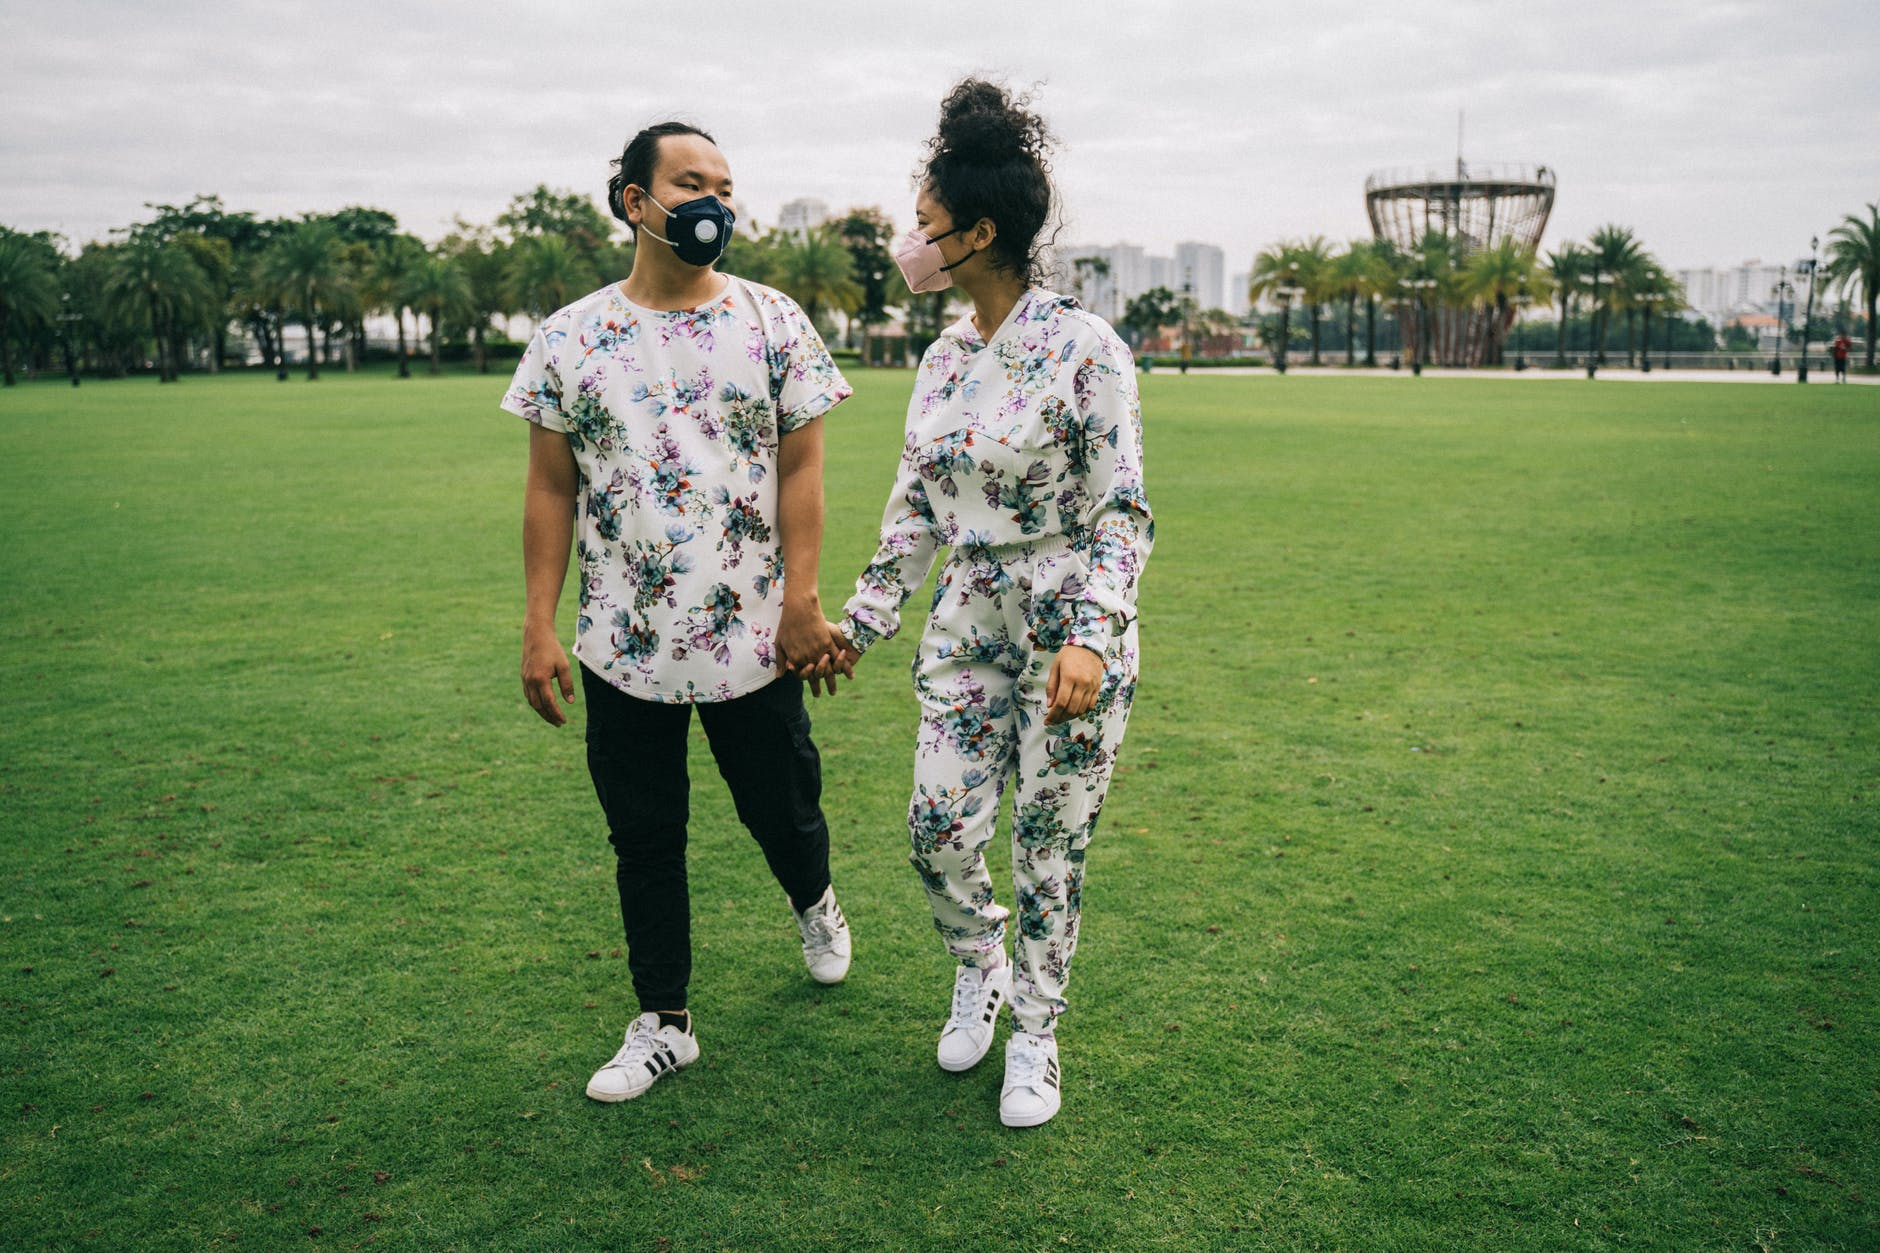 couple with face masks standing on green grass field